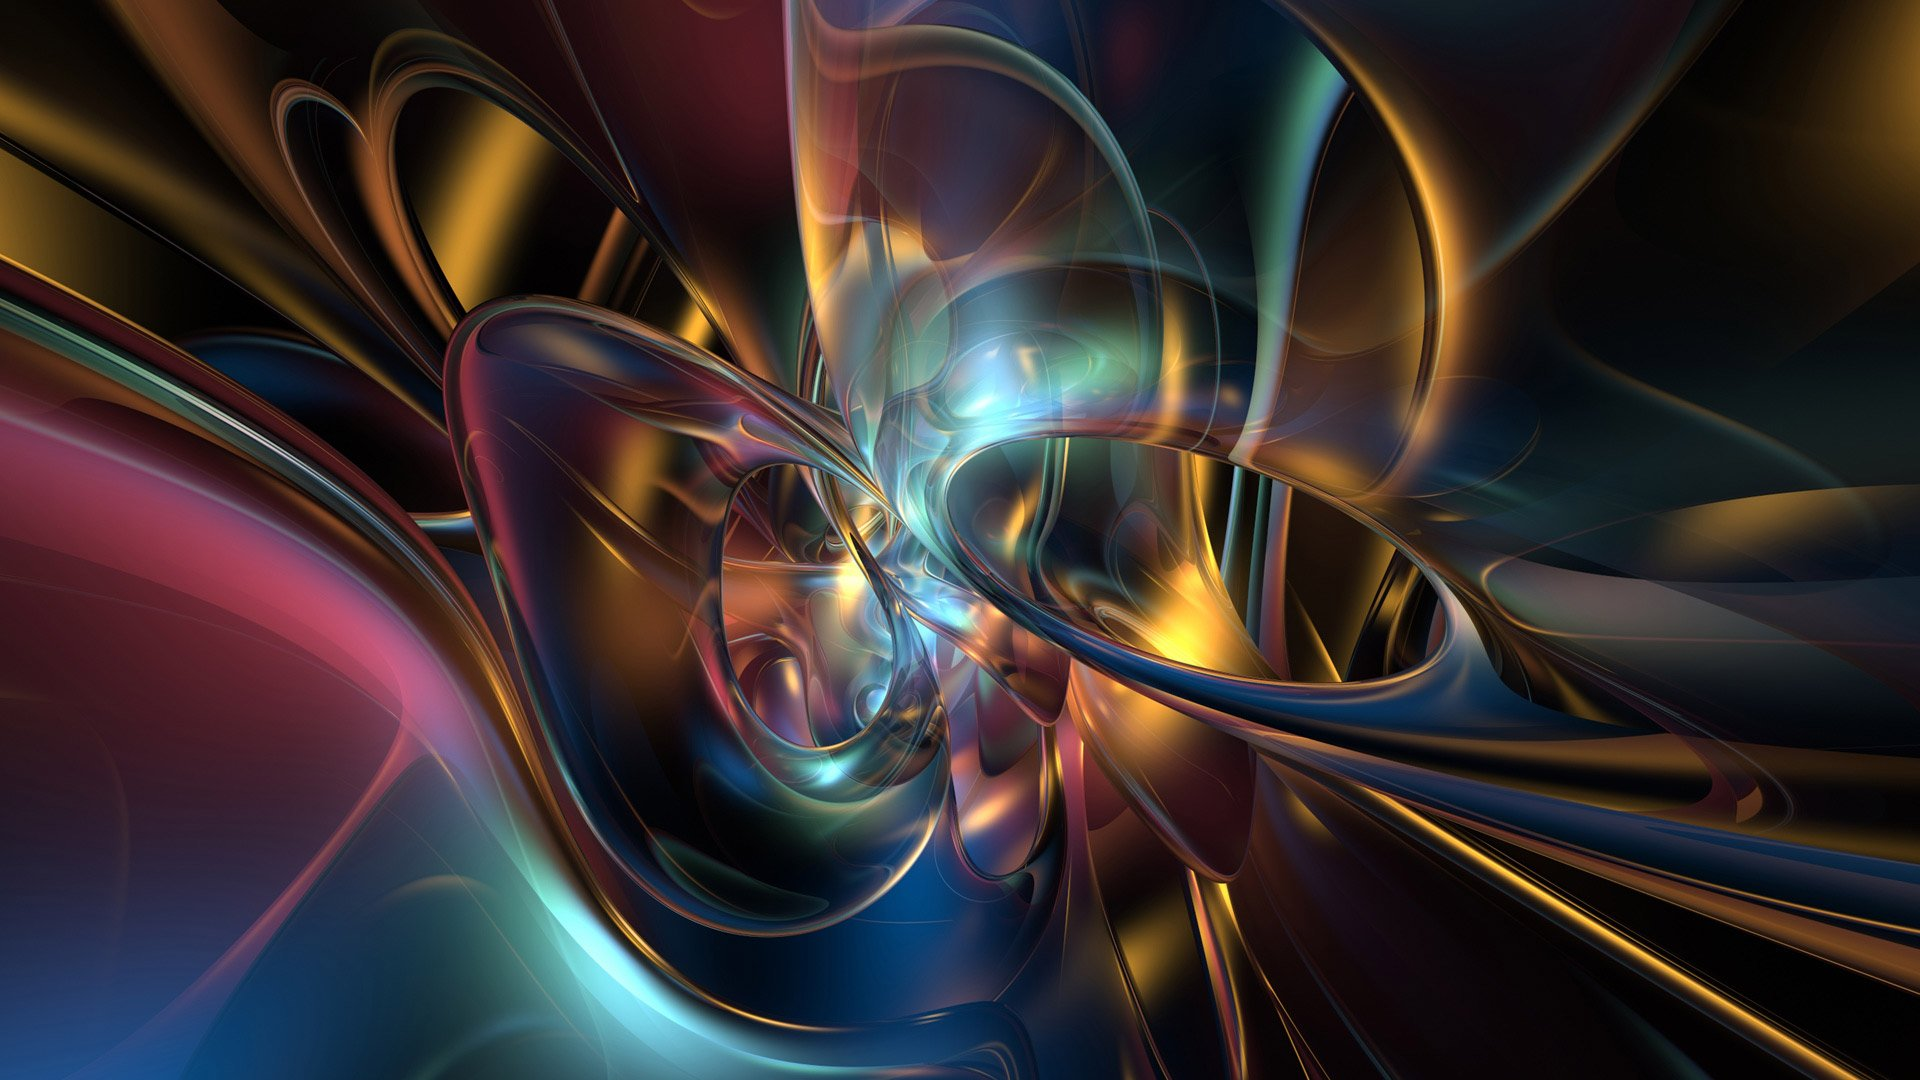 Abstract Design 1080p Wallpapers | HD Wallpapers